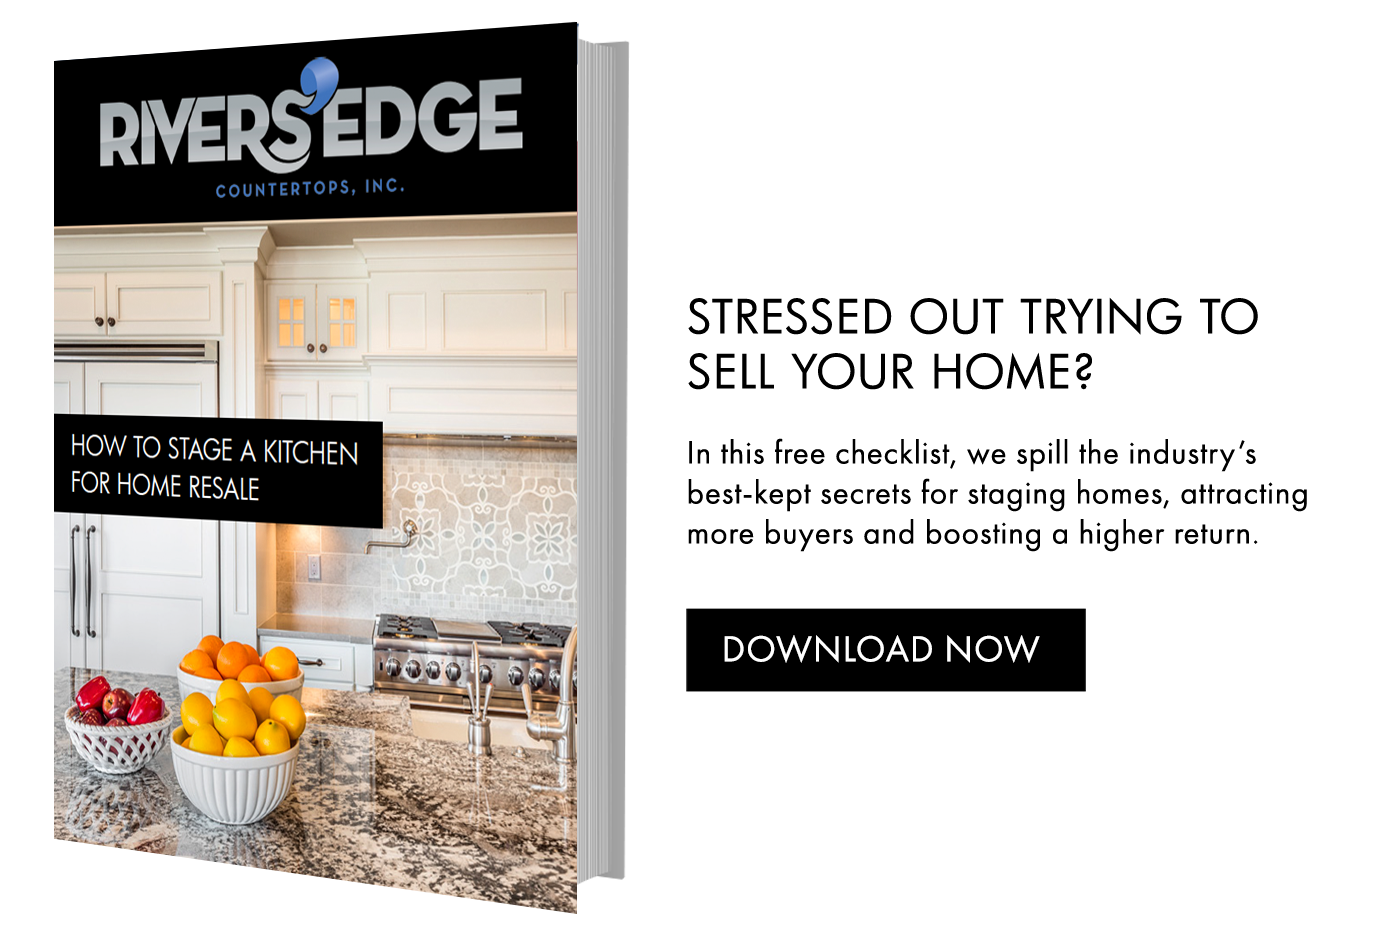 How to Stage a Kitchen for Home Resale